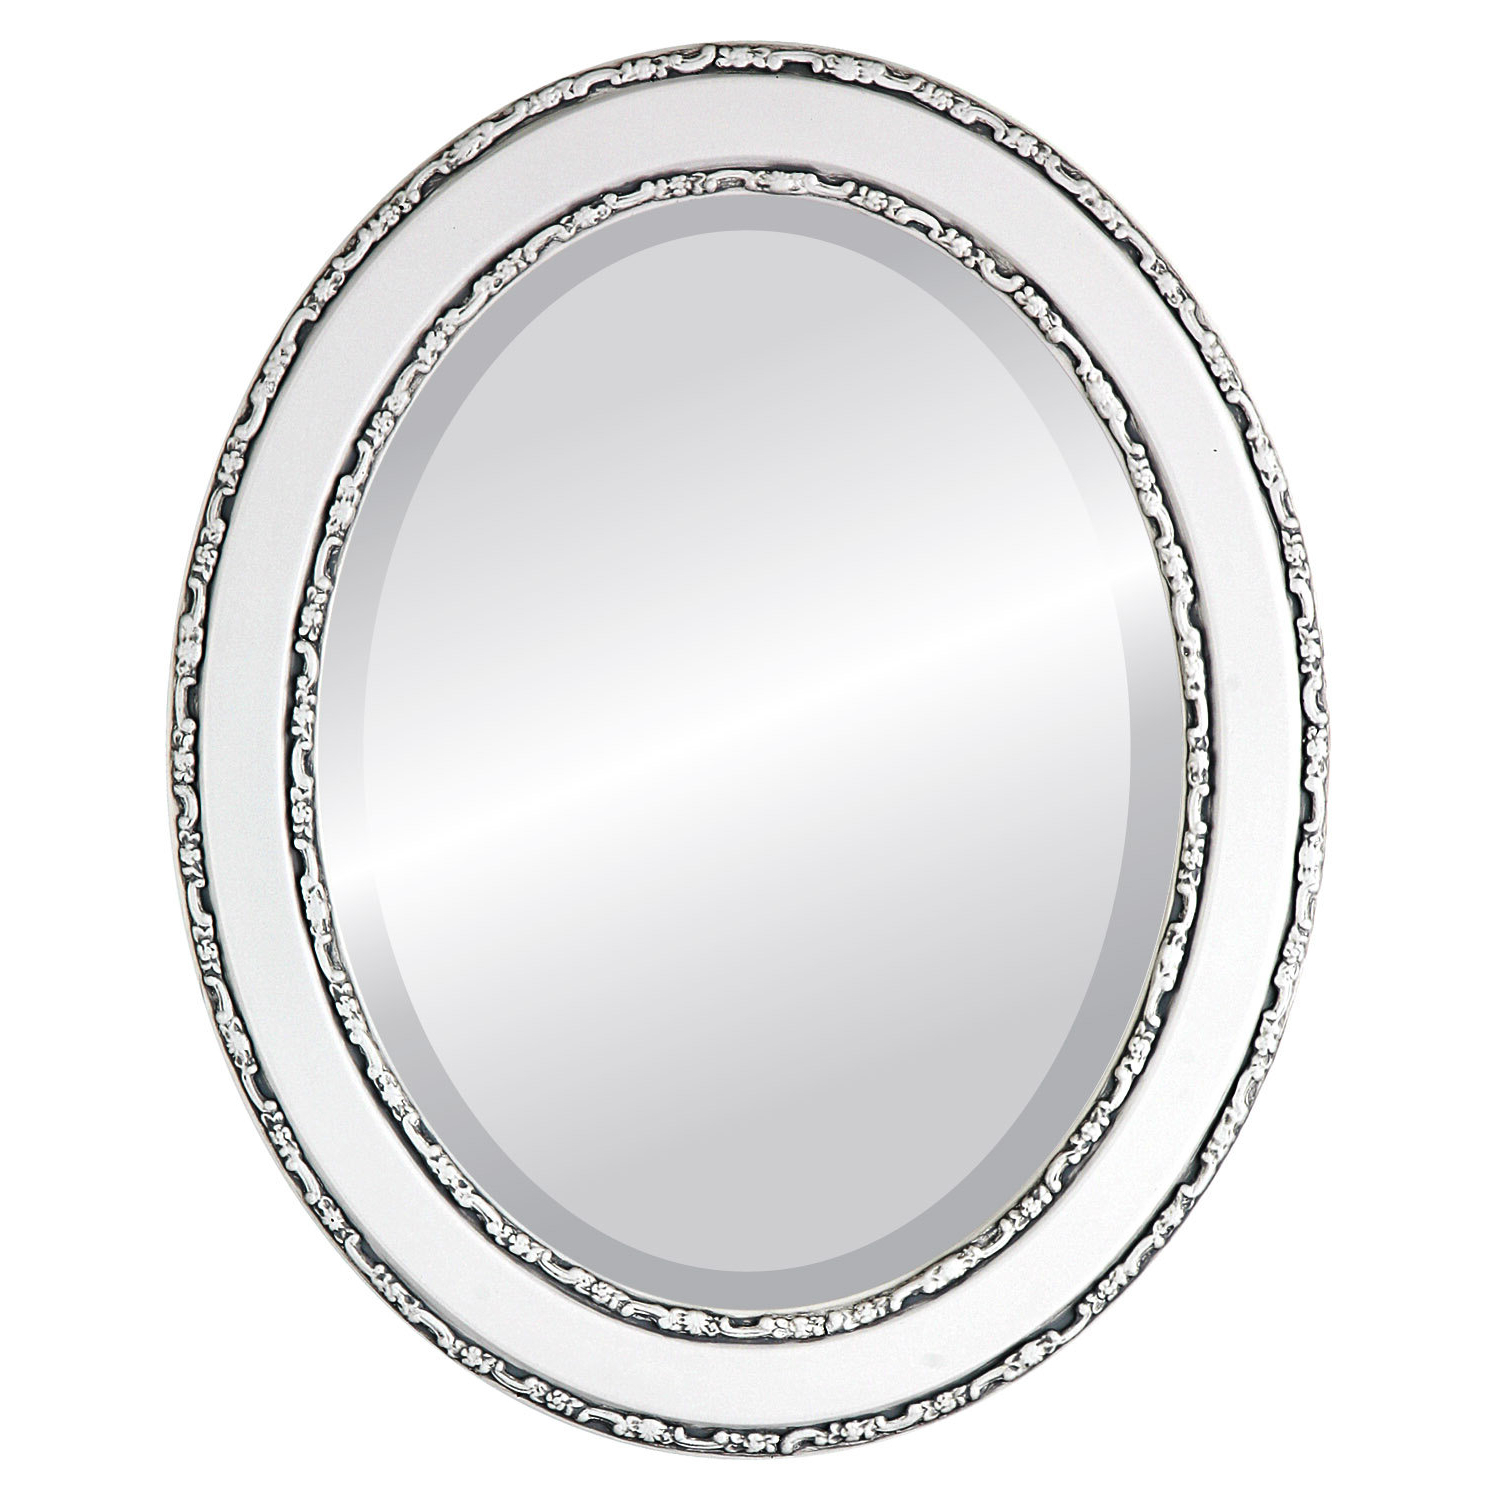 Minerva Oval Traditional Beveled Accent Mirror Pertaining To Popular Minerva Accent Mirrors (Gallery 7 of 20)